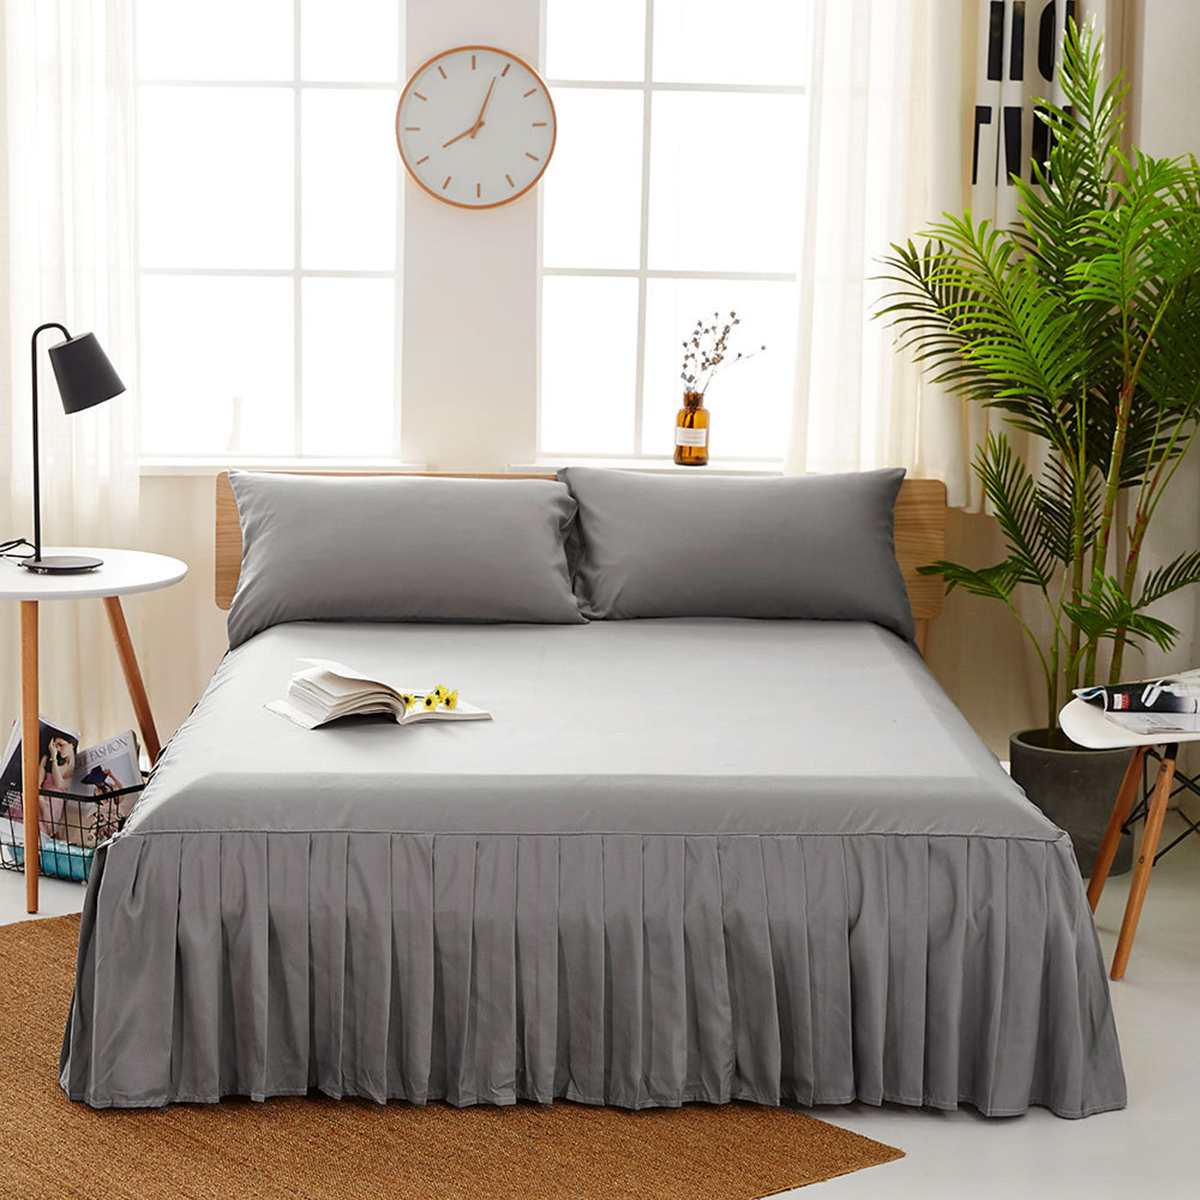 4 Colors 4 Sizes Solid Color Bed Skirt Bed Home Hotel Fitted Sheet Cover Bedspread Pillowcase